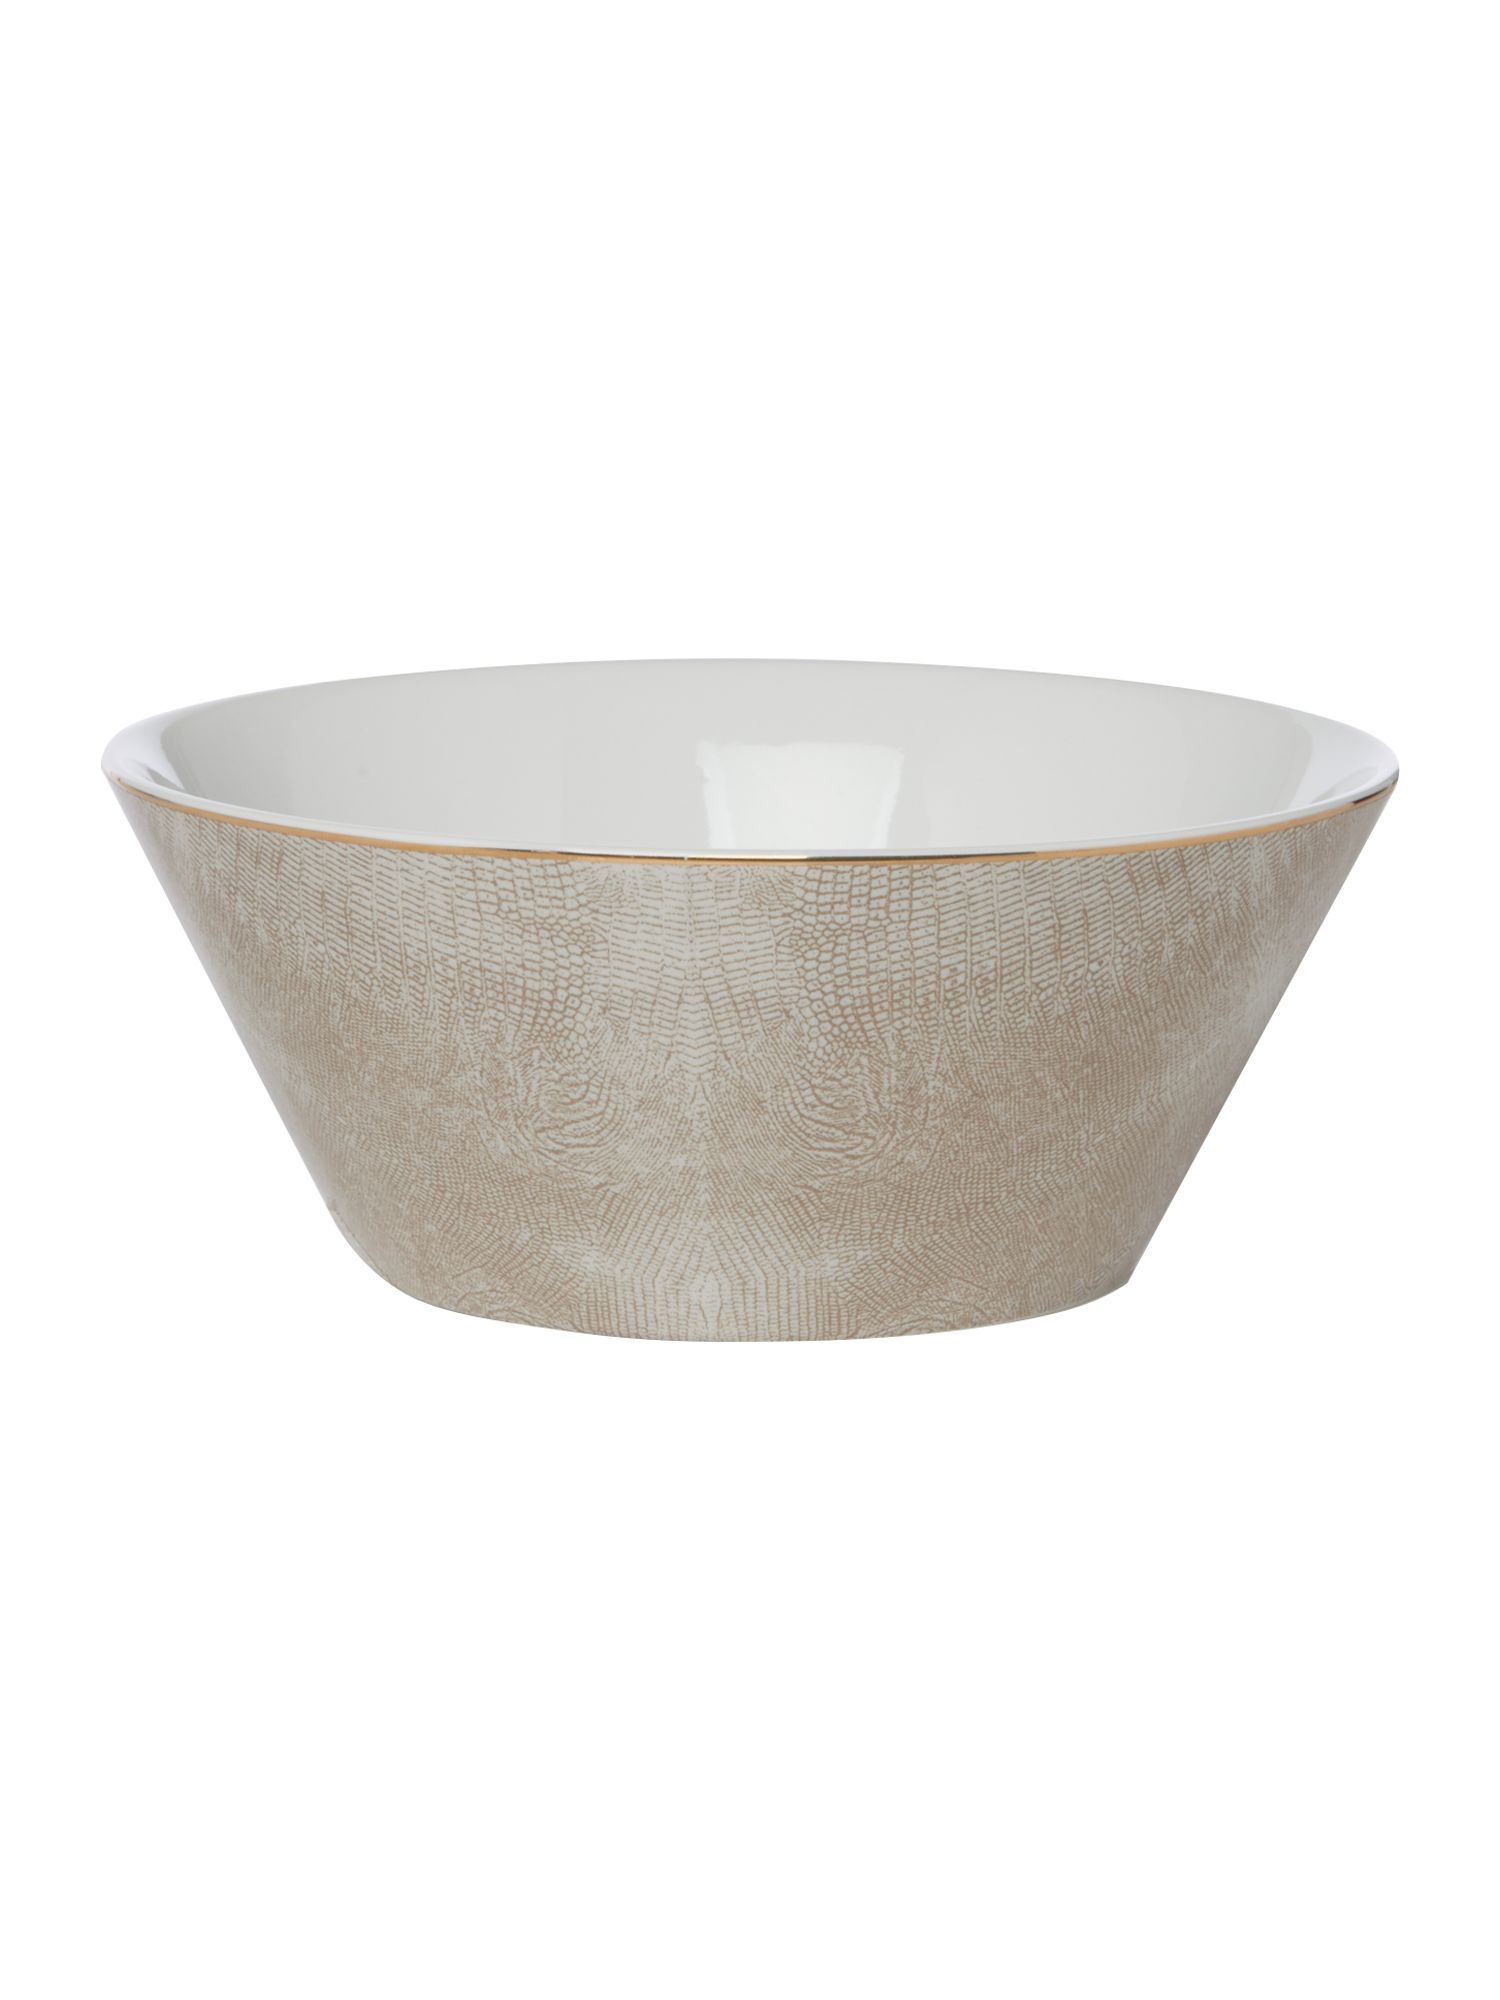 Casa Couture Casa Couture Luxe cereal bowl